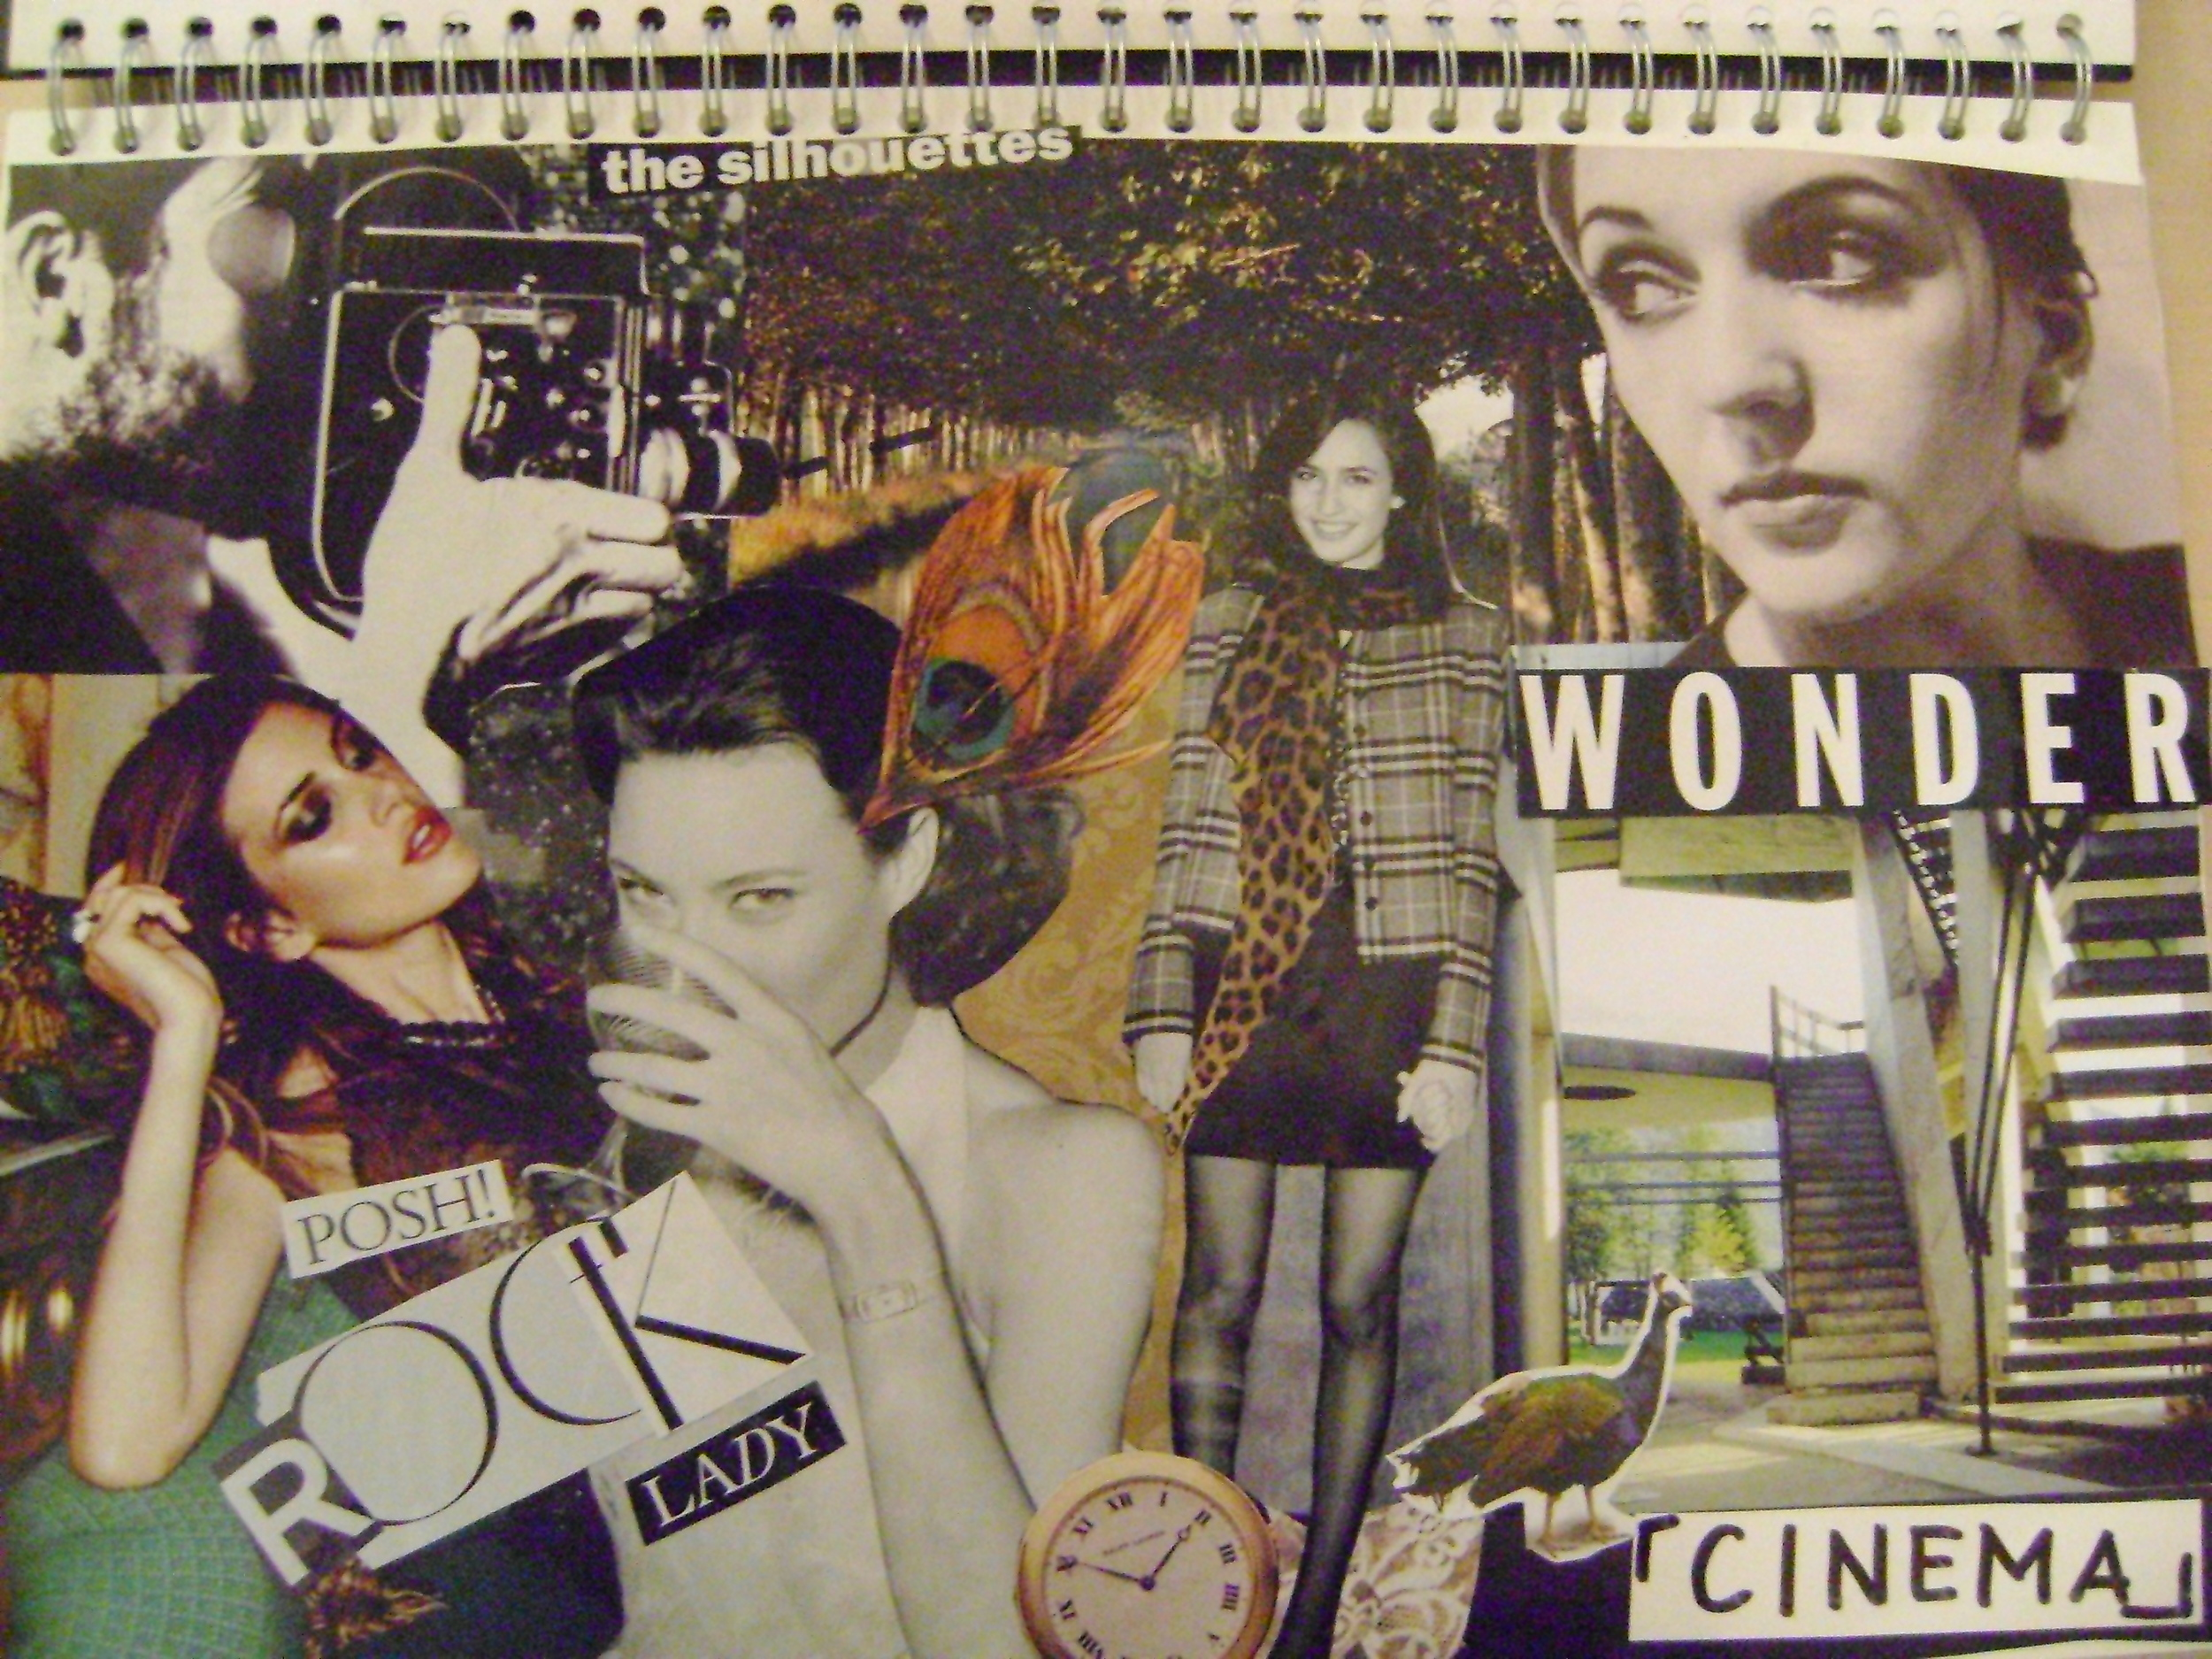 My favorite example of one such collage, built around vintage themes. I really like the pastiche look.(source:  Catherine Yong )